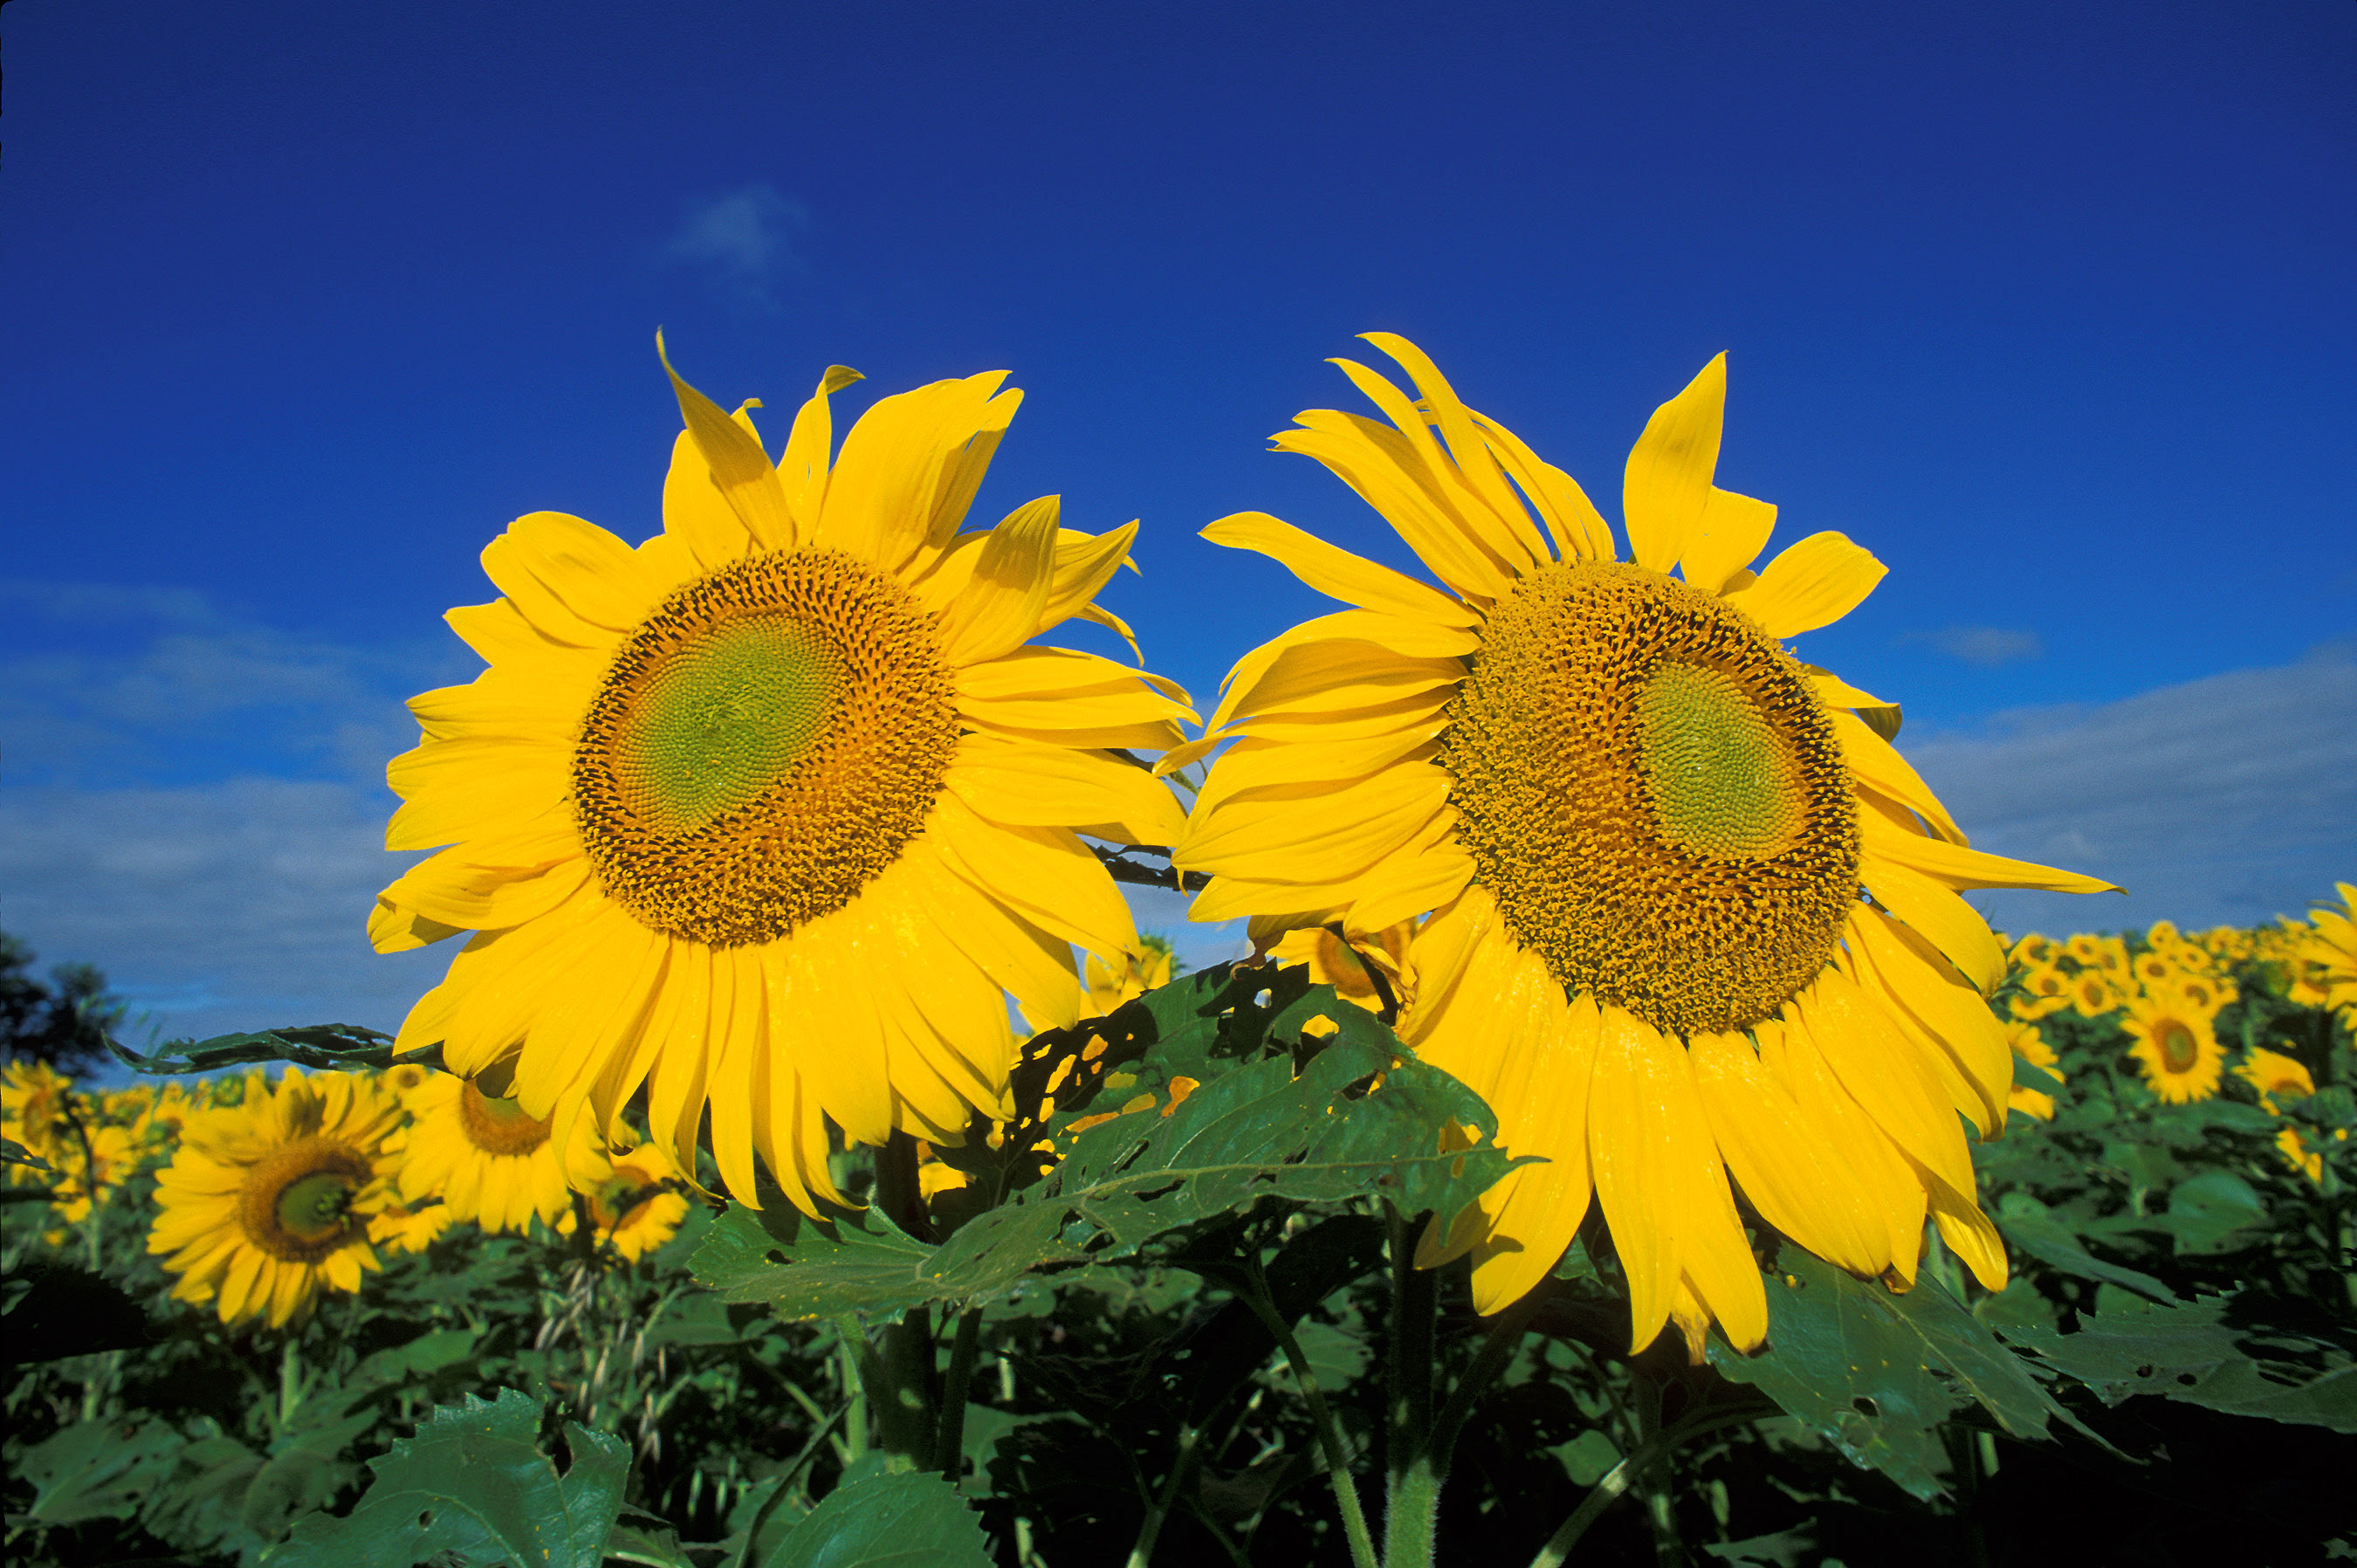 Sunflowers | Free Images at Clker.com - vector clip art ...